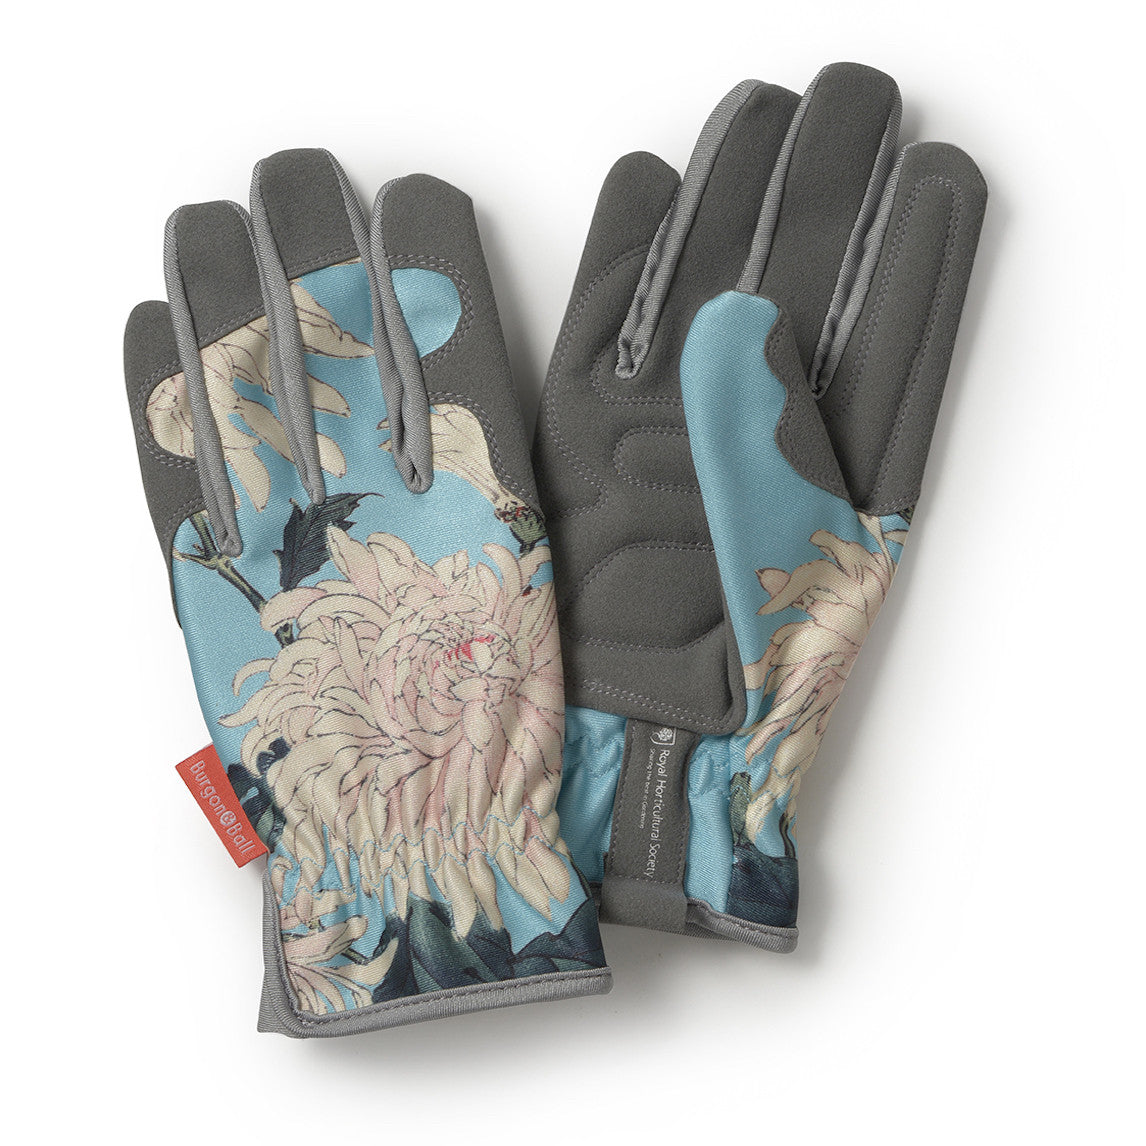 Chrysanthemum Gloves - The Potting Shed Garden Tools